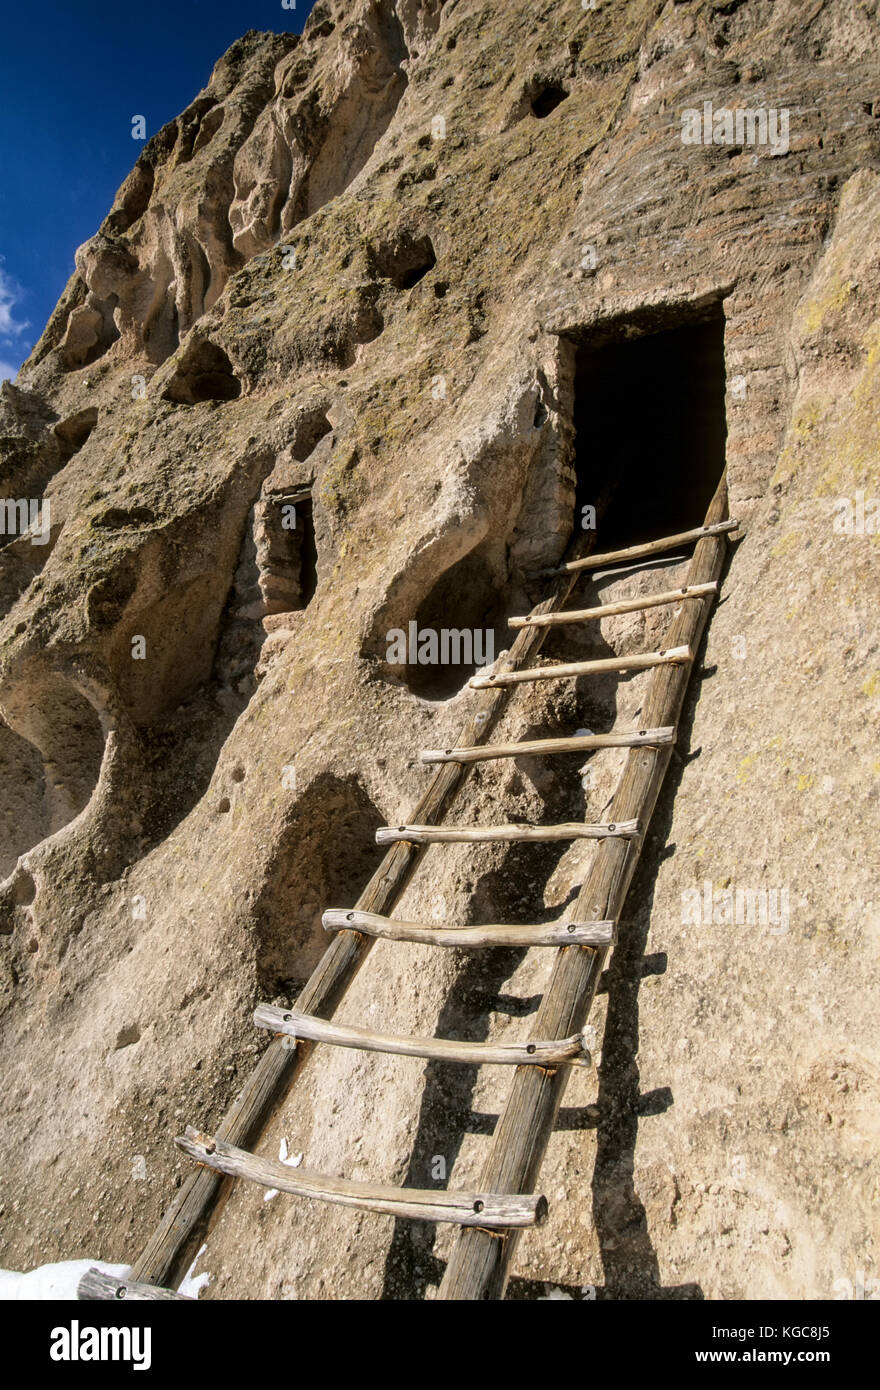 Ladder to cliff dwelling, Frijoles Canyon, Bandelier National Monument, near Los Alamos, New Mexico USA Stock Photo